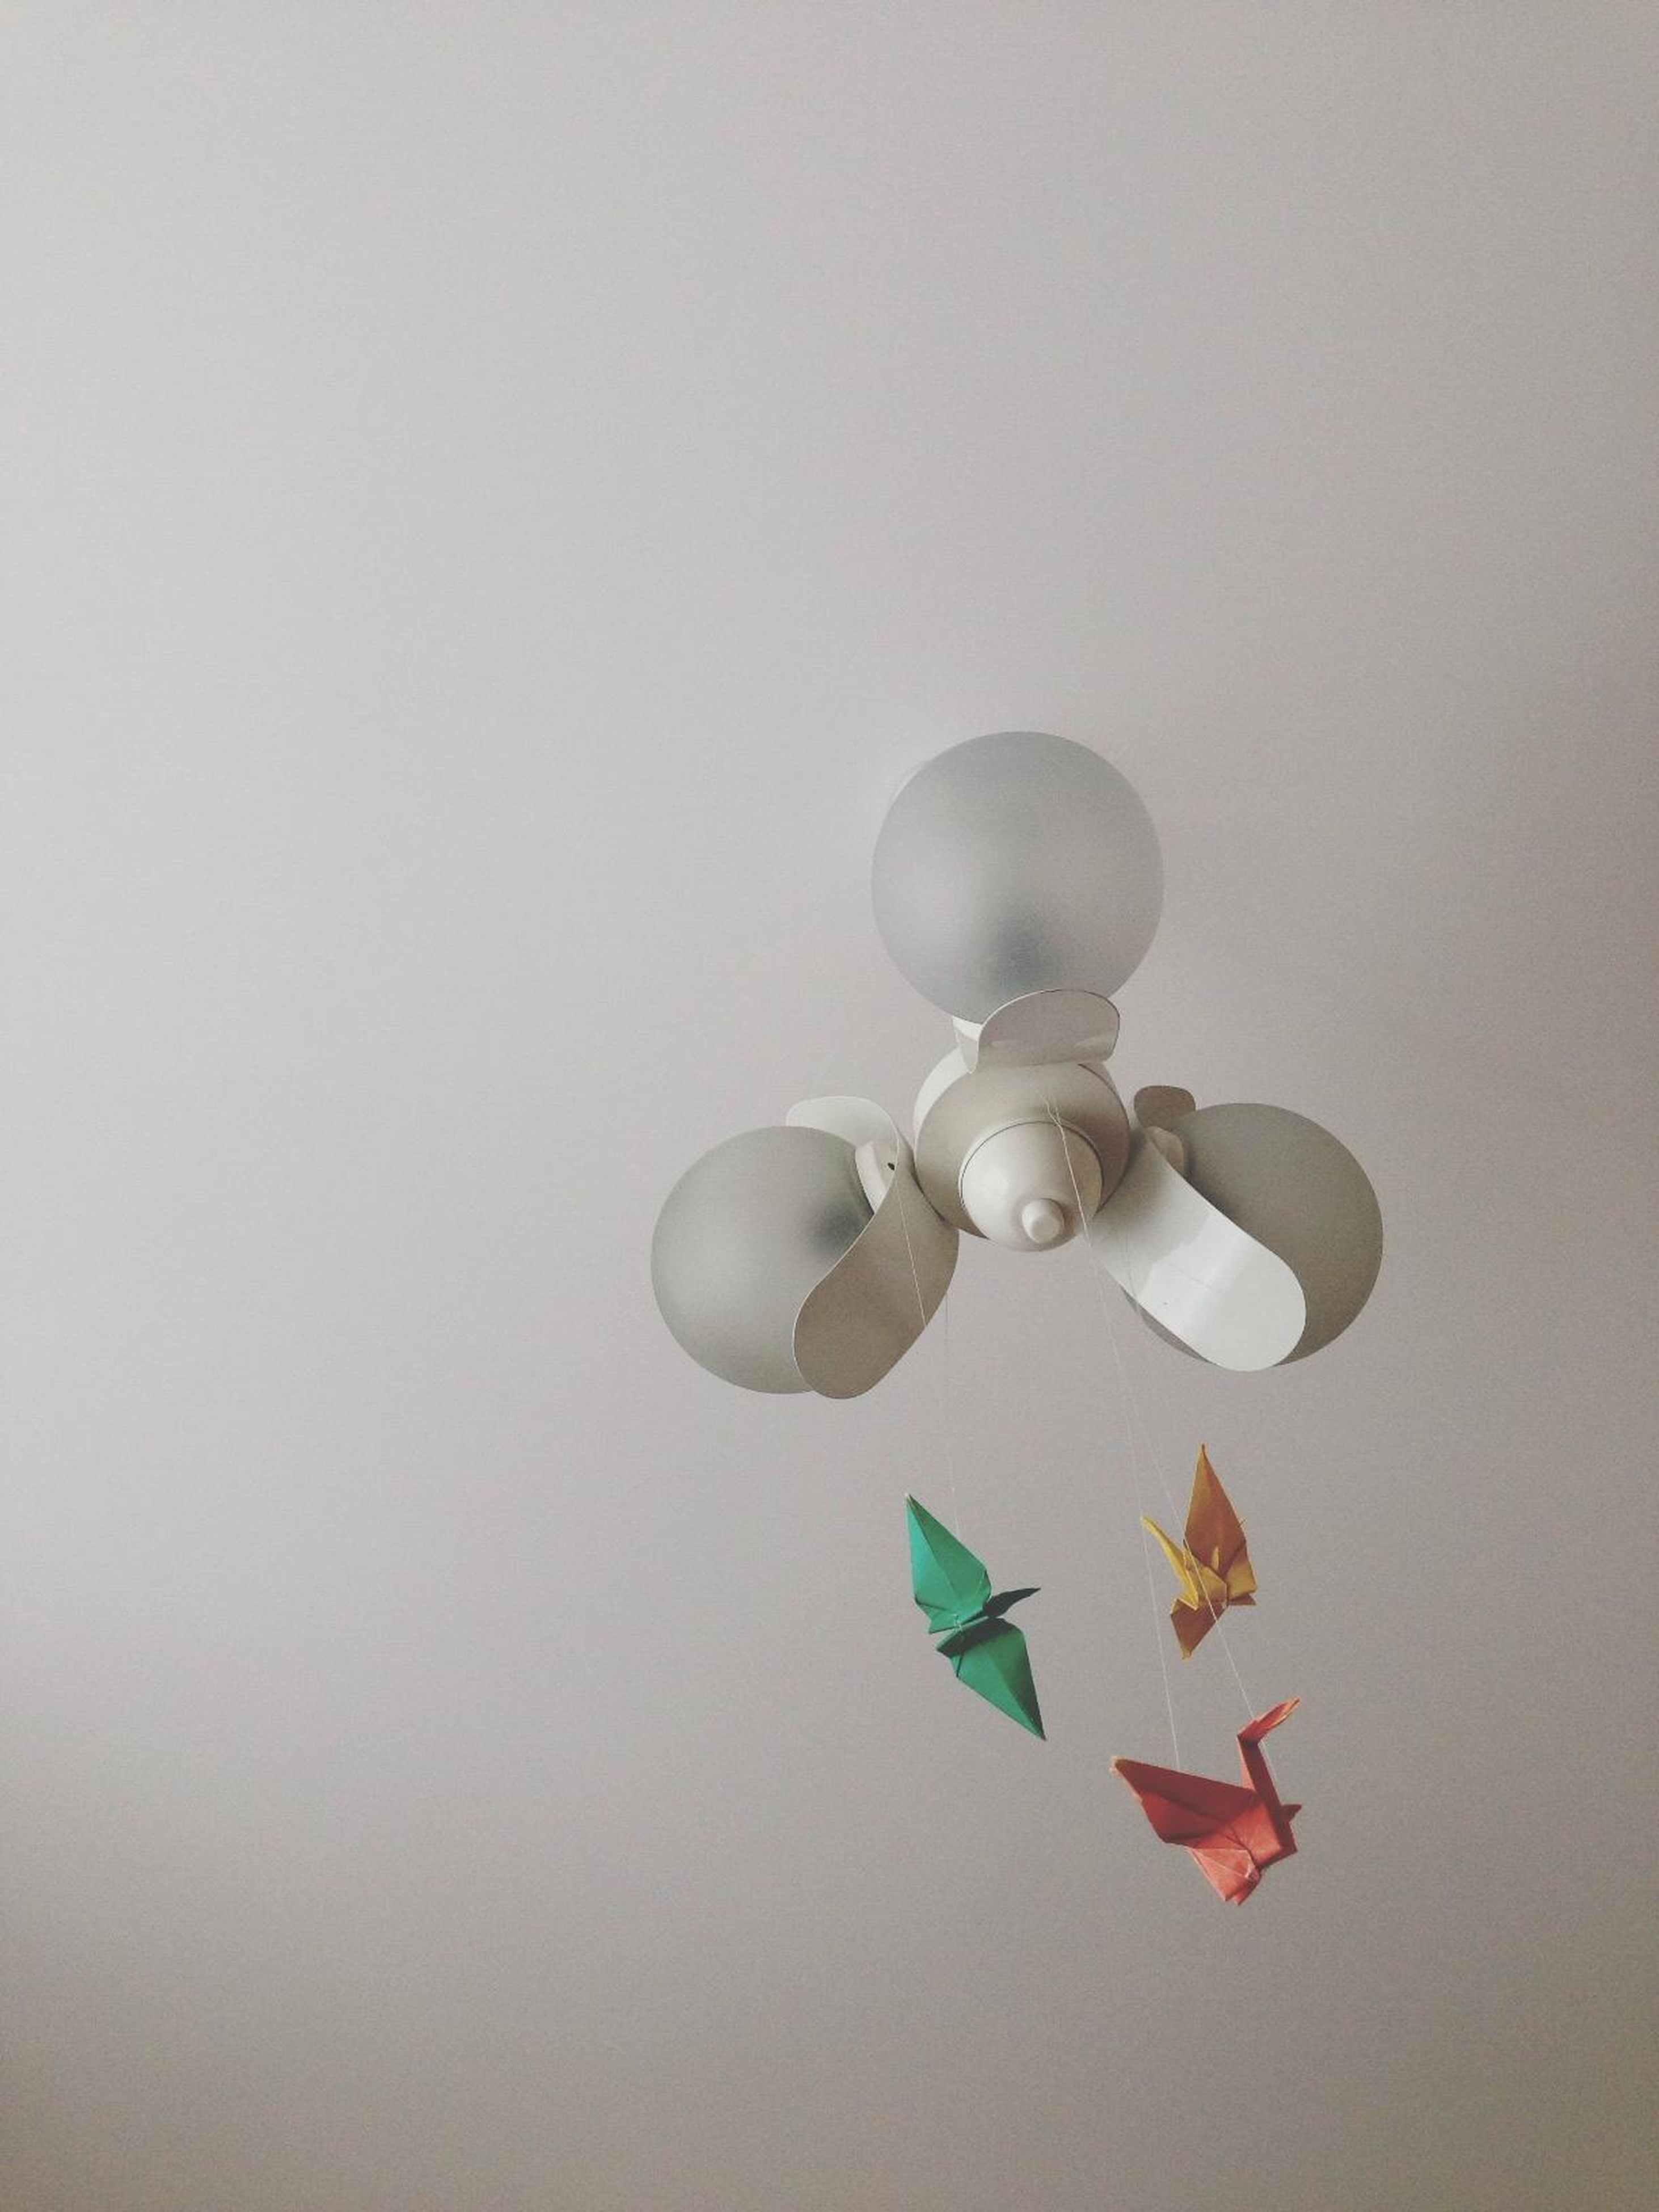 indoors, still life, copy space, creativity, hanging, decoration, art and craft, art, low angle view, lighting equipment, ceiling, studio shot, wall - building feature, no people, single object, white color, close-up, ideas, multi colored, electric lamp